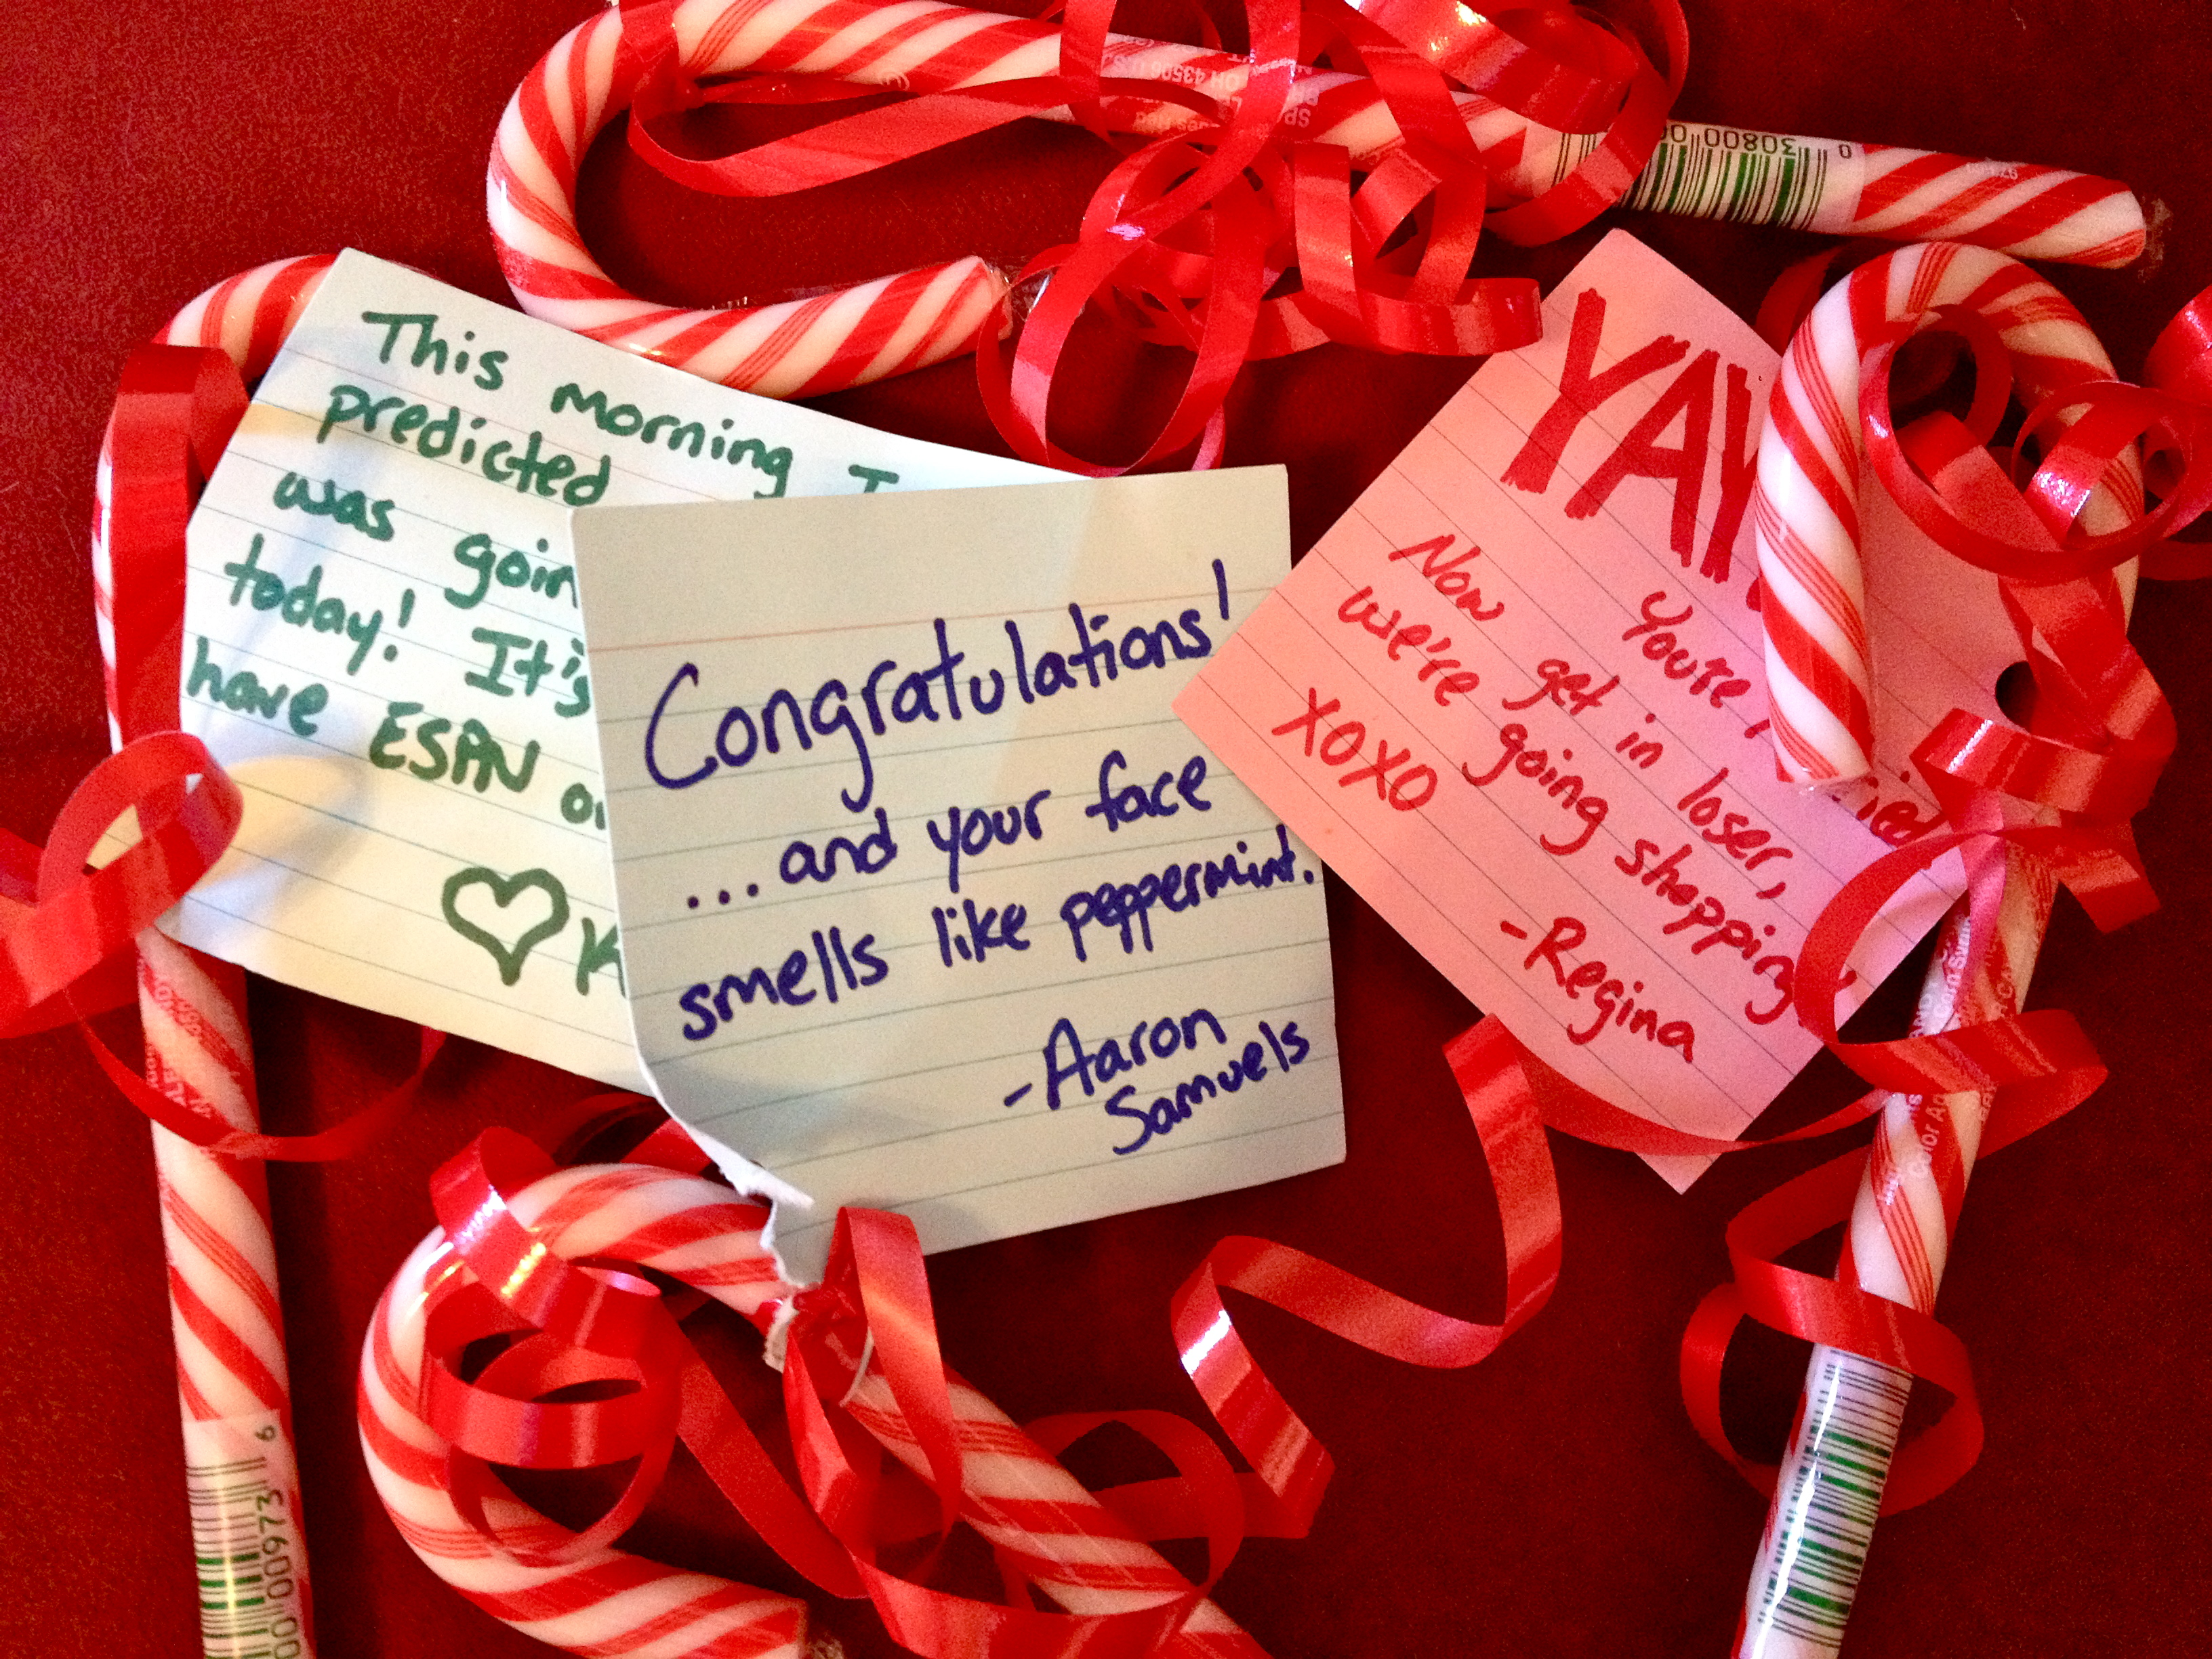 Wedding Mean Girls candy cane grams